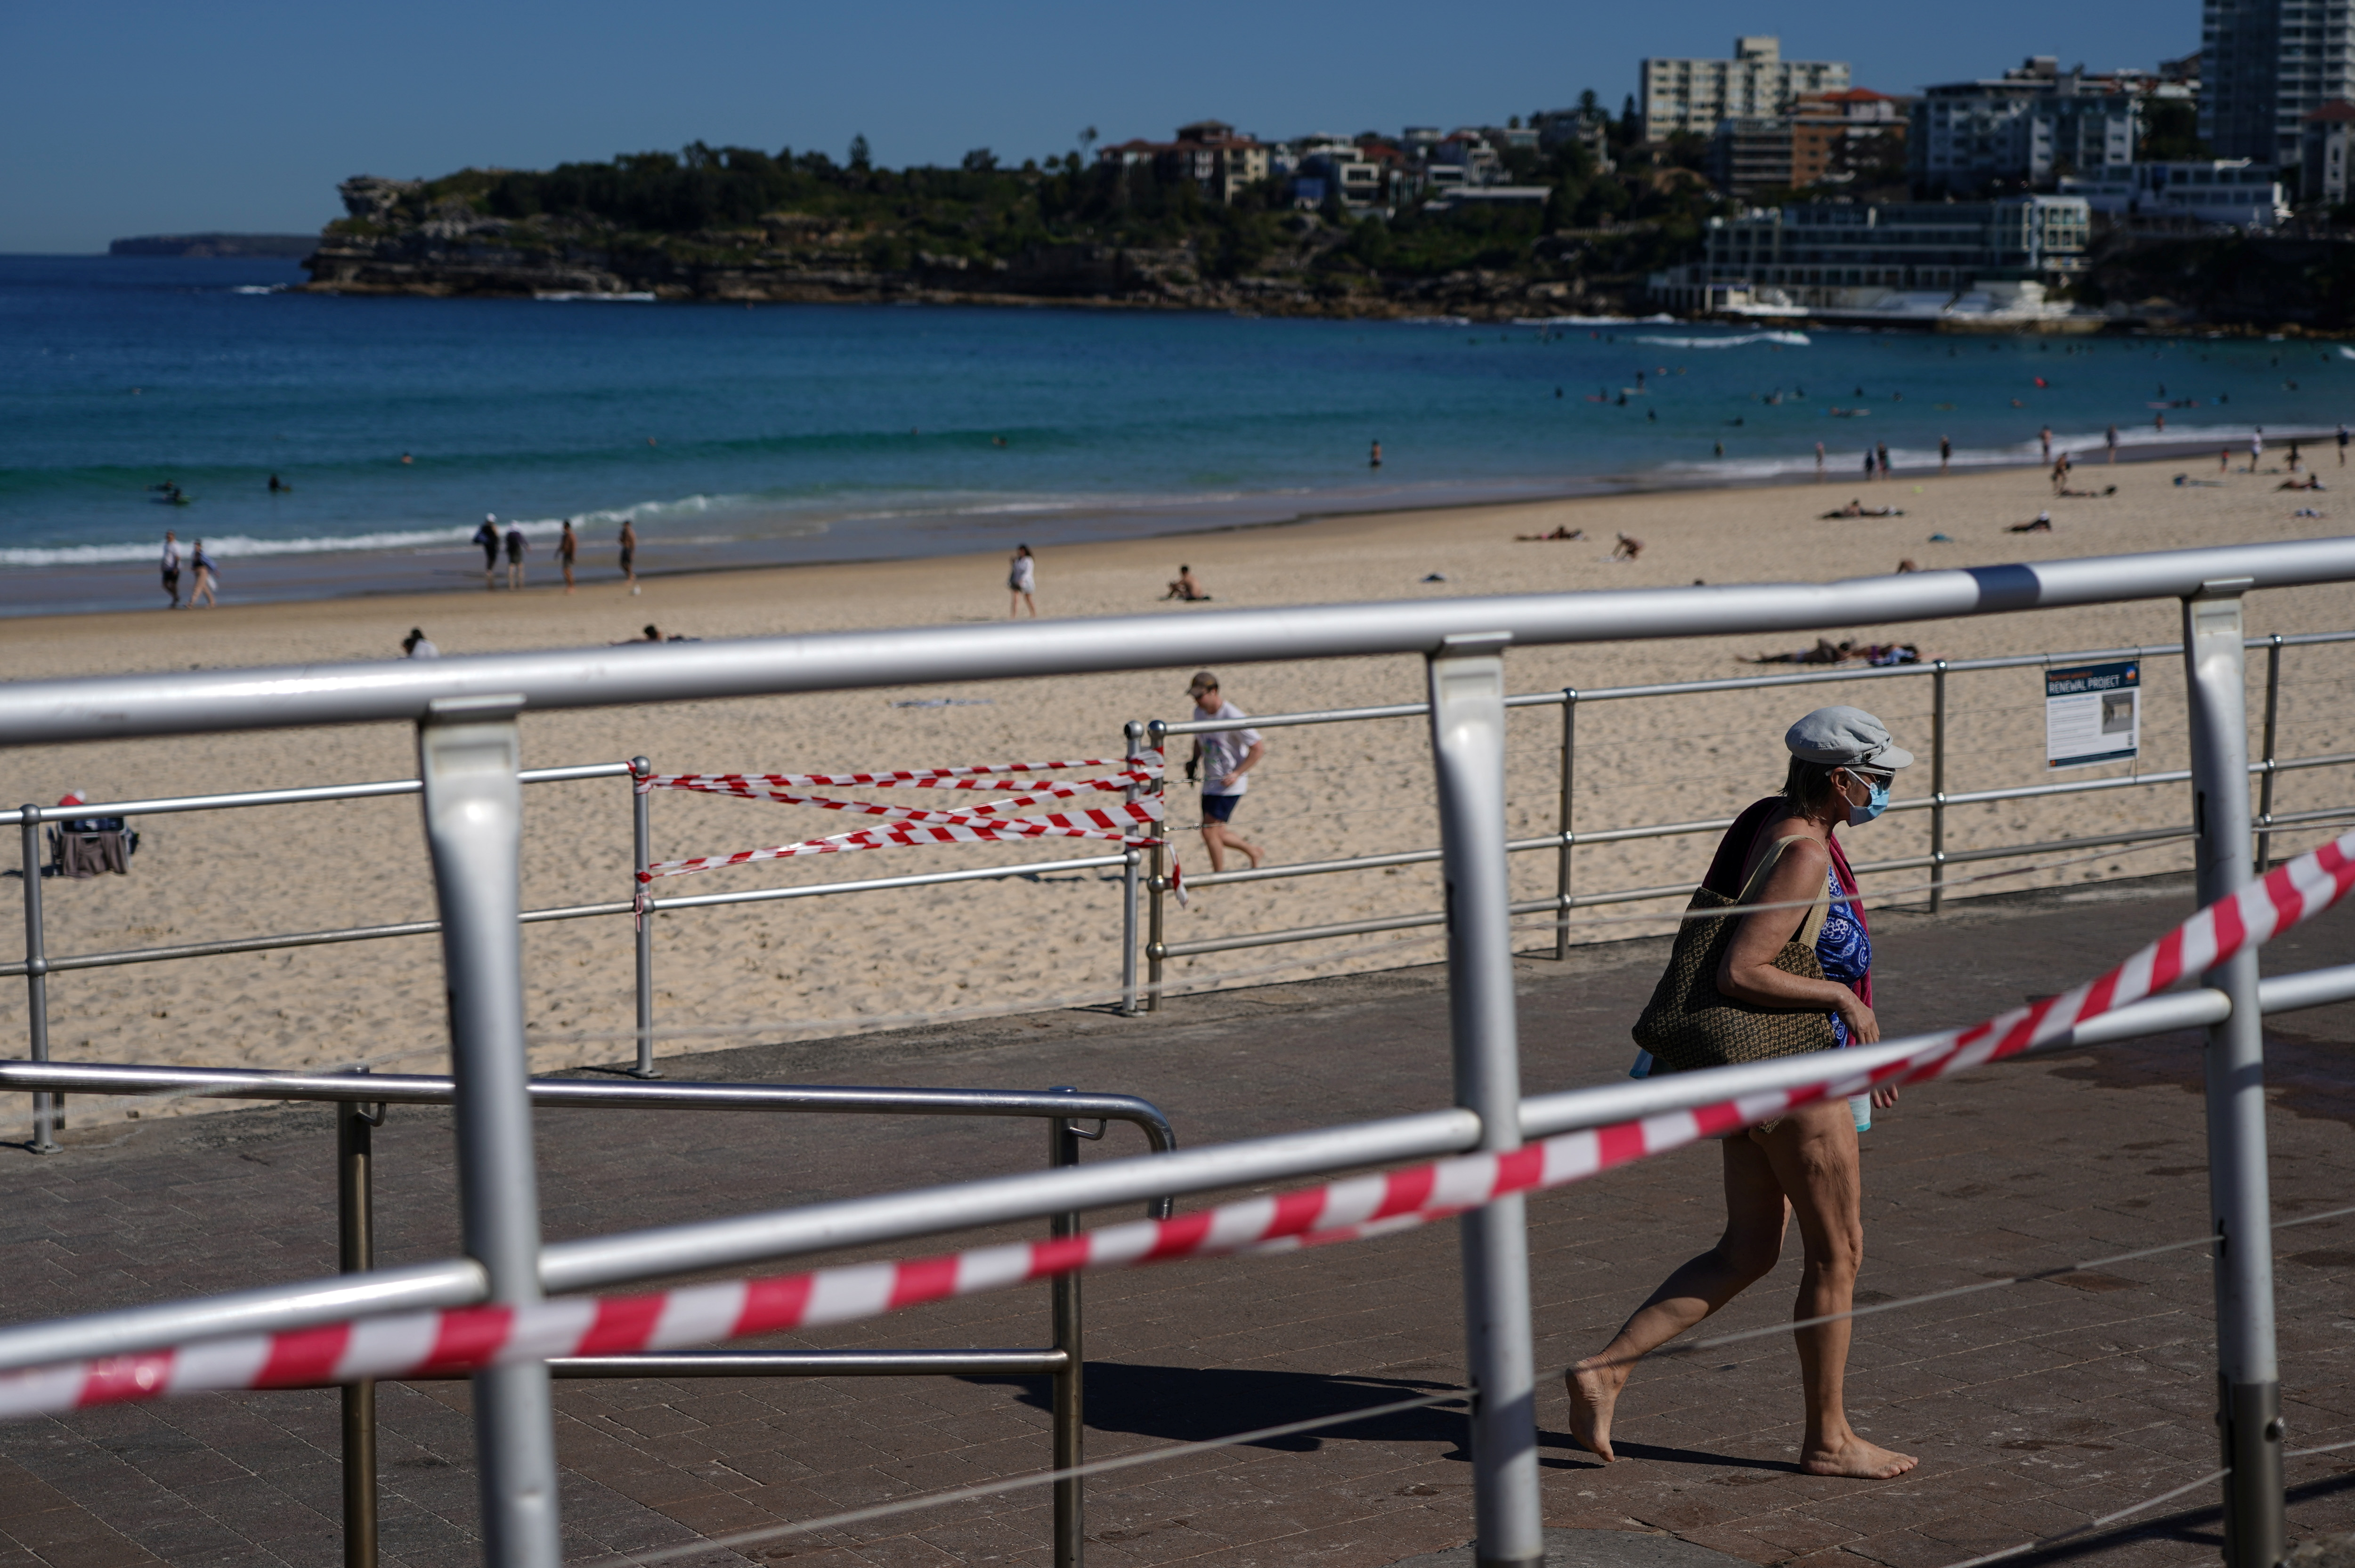 A beachgoer in bathing suit and protective face mask walks up the promenade at Bondi Beach during a lockdown to curb the spread of a coronavirus disease (COVID-19) outbreak in Sydney, Australia, September 1, 2021. REUTERS/Loren Elliott